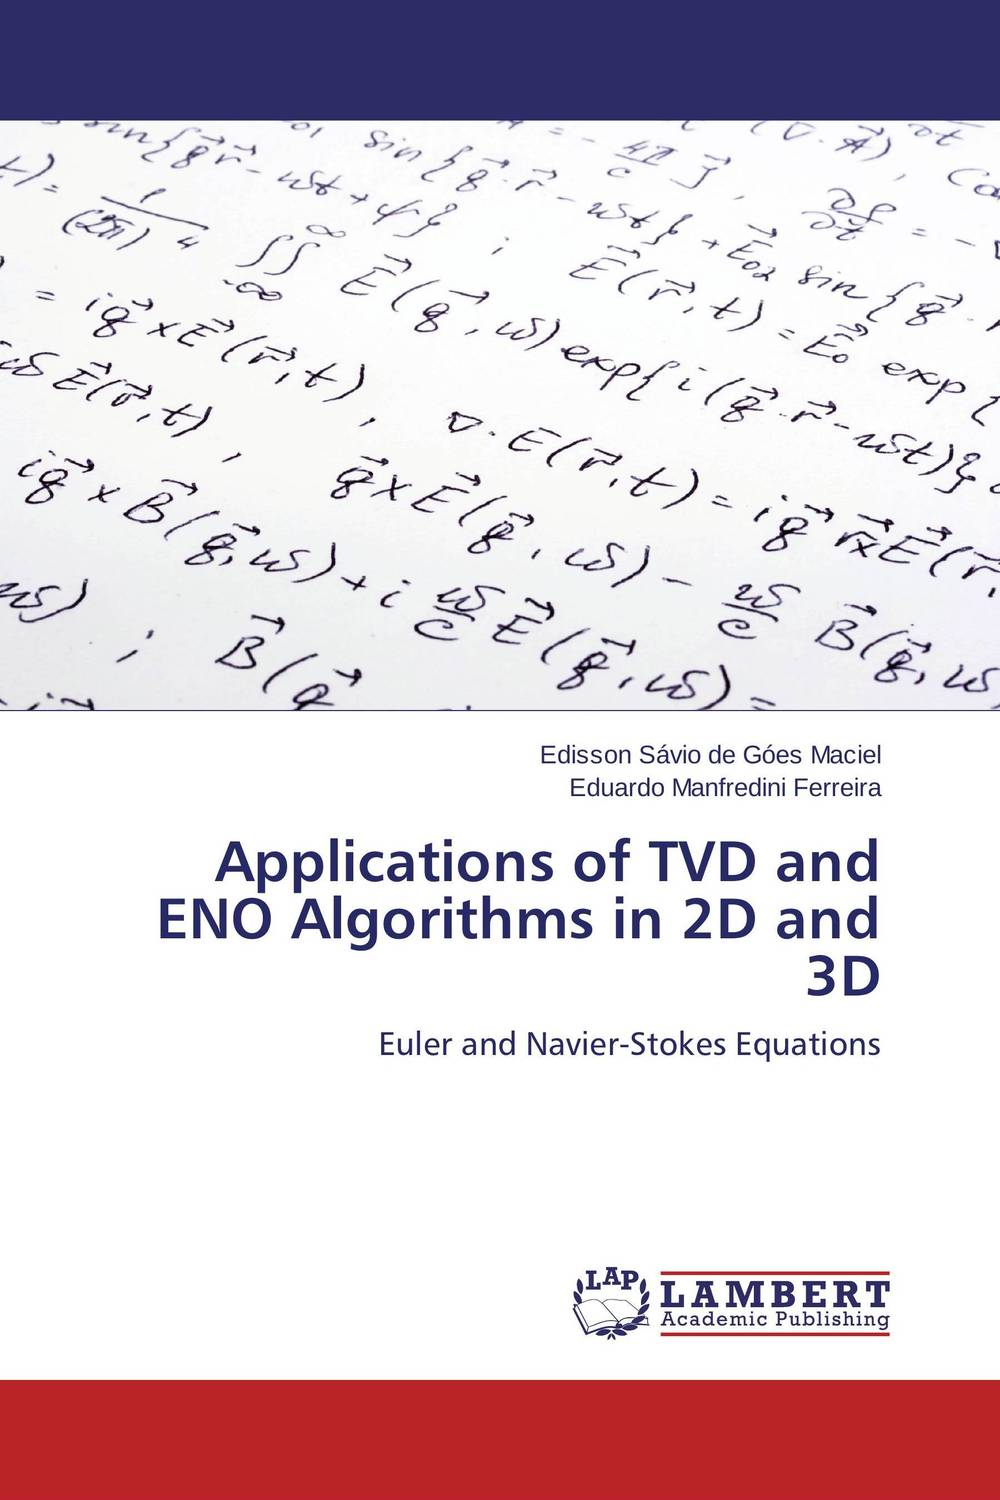 Applications of TVD and ENO Algorithms in 2D and 3D belousov a security features of banknotes and other documents methods of authentication manual денежные билеты бланки ценных бумаг и документов